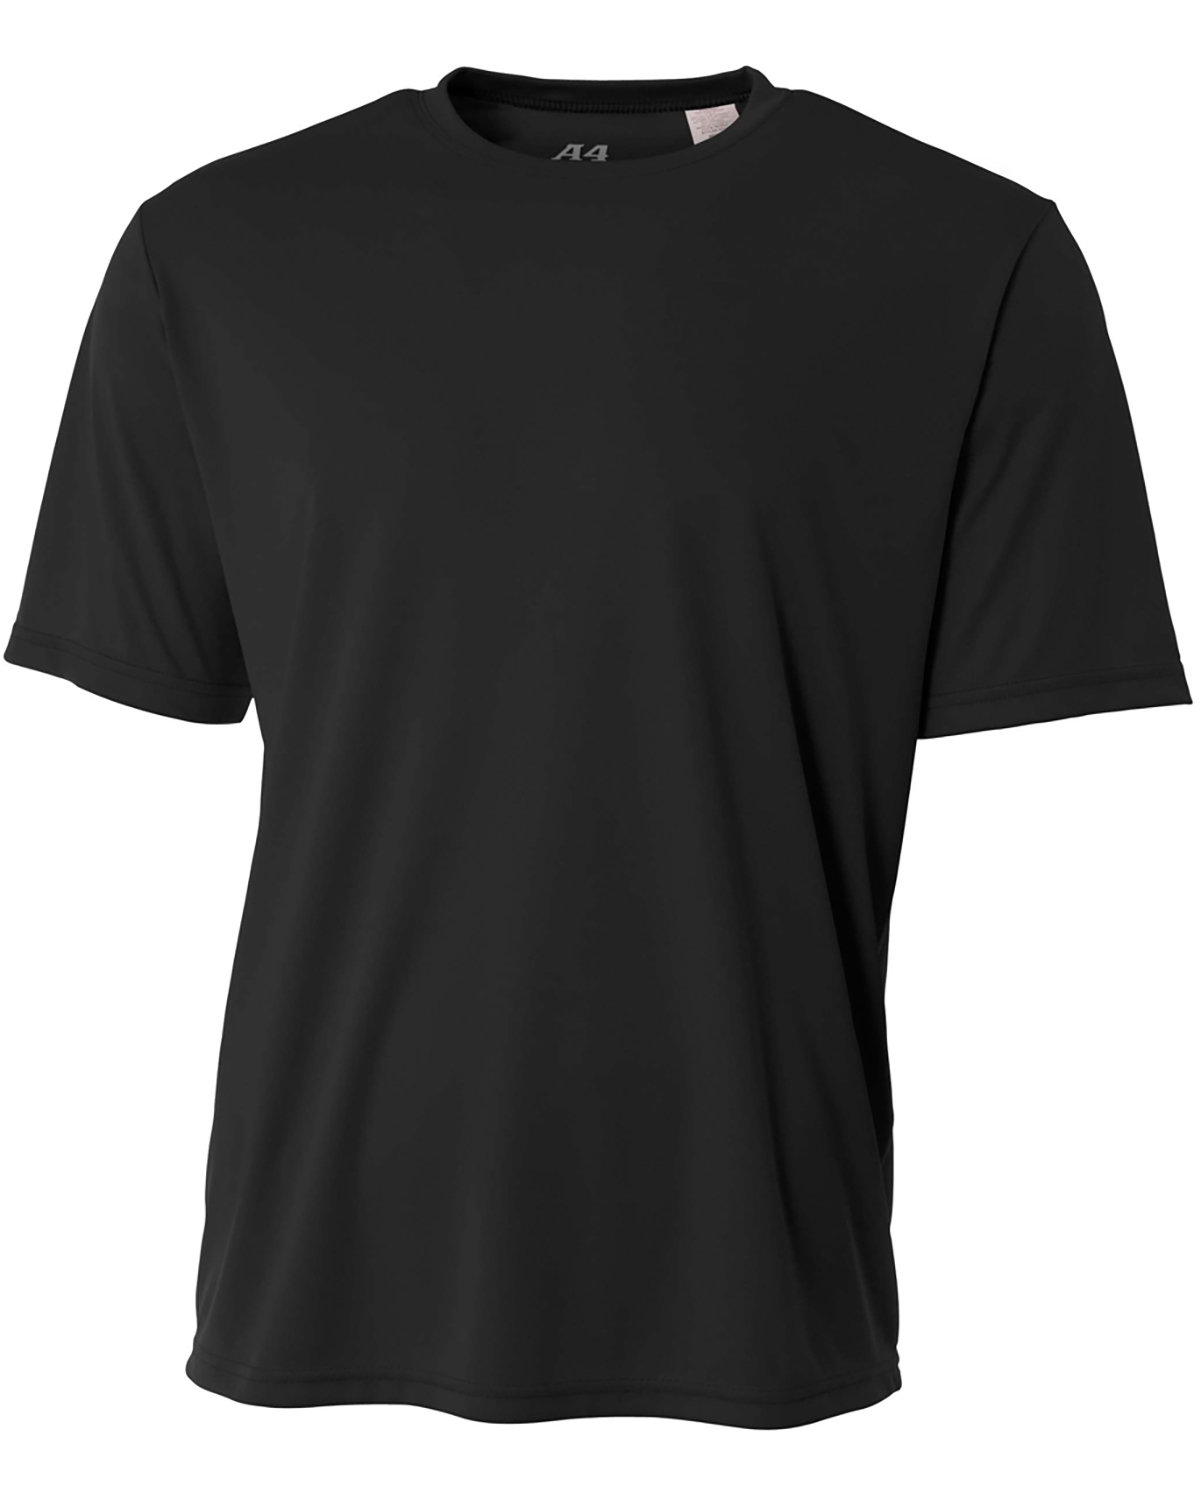 A4 Youth Cooling Performance T-Shirt BLACK